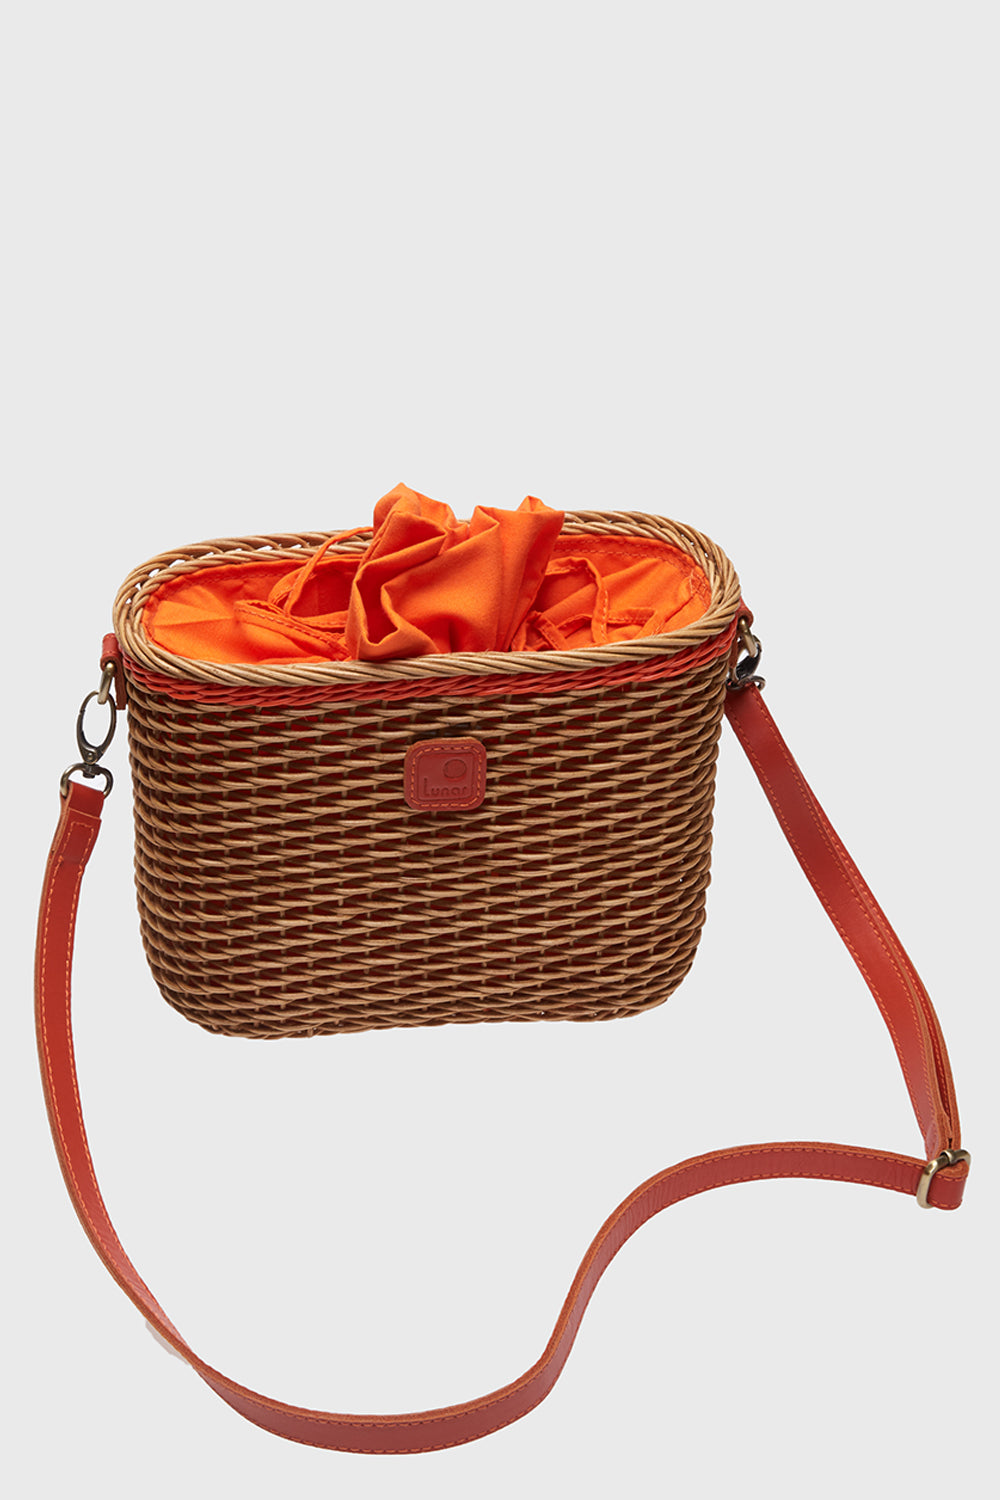 Cole Bag in Orange